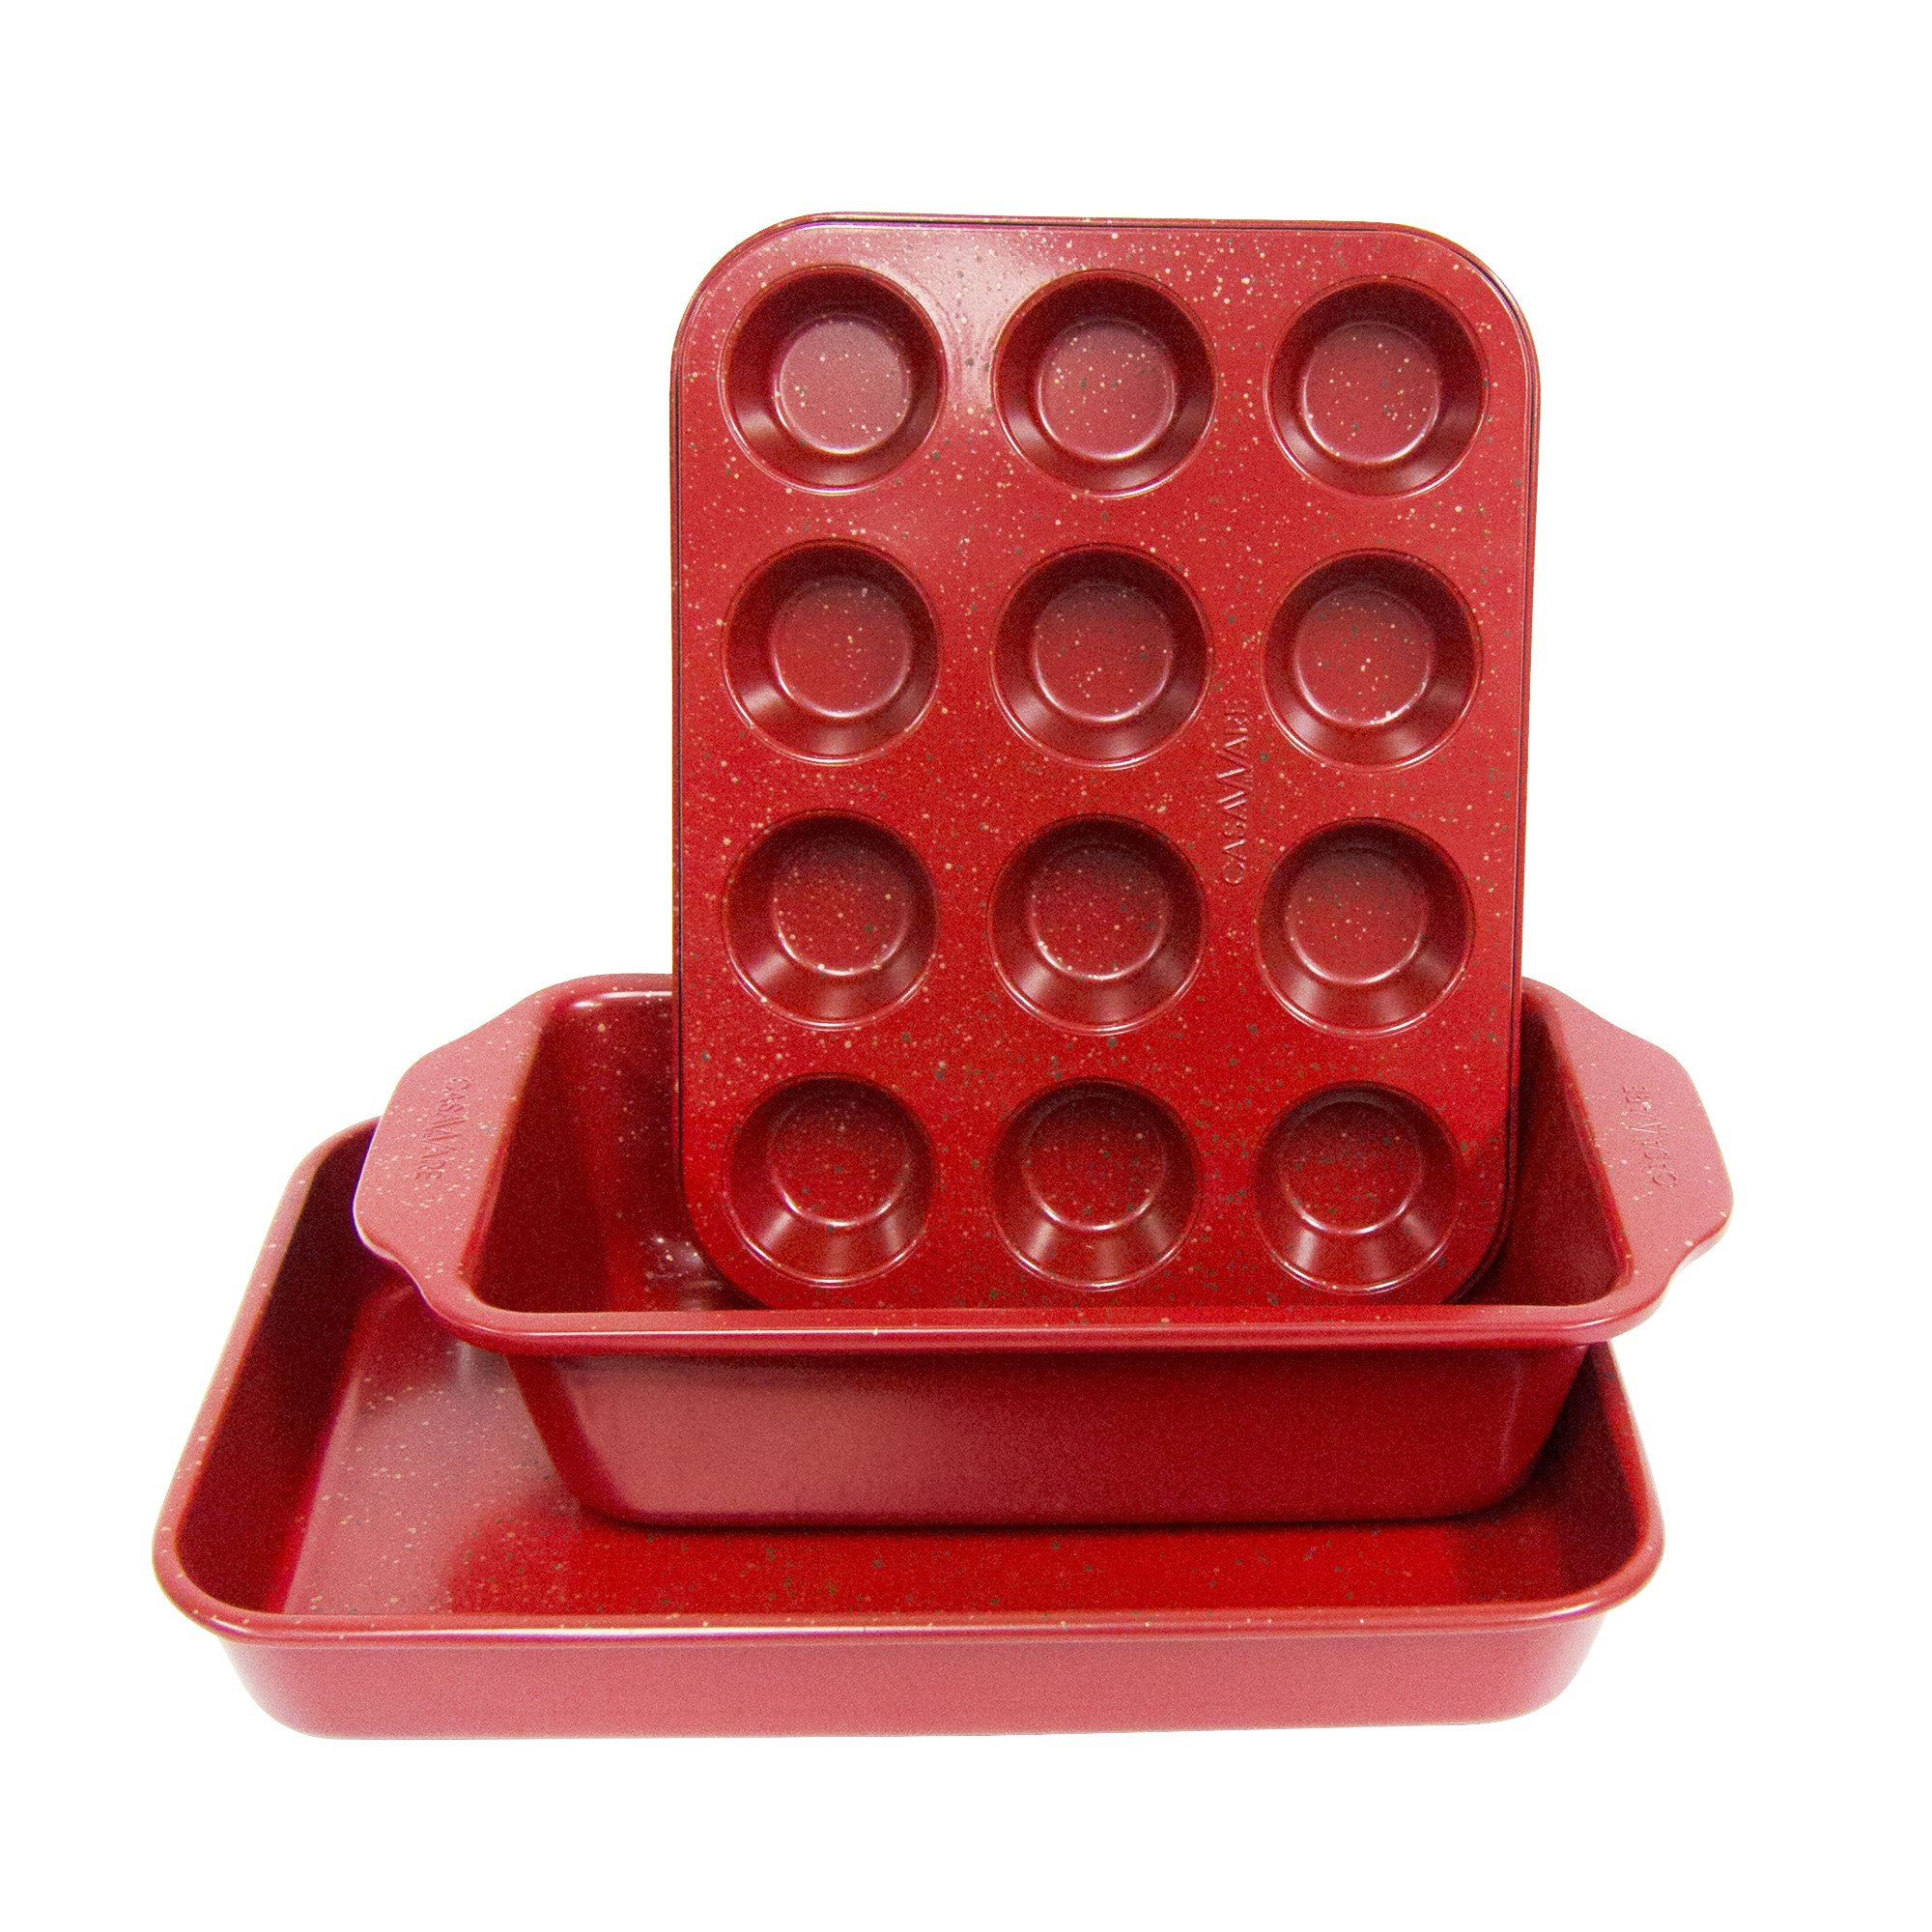 casaWare Toaster Oven 3pc Set (Baking, Loaf and Mini Muffin Pan 12 Cup) (Red Granite)